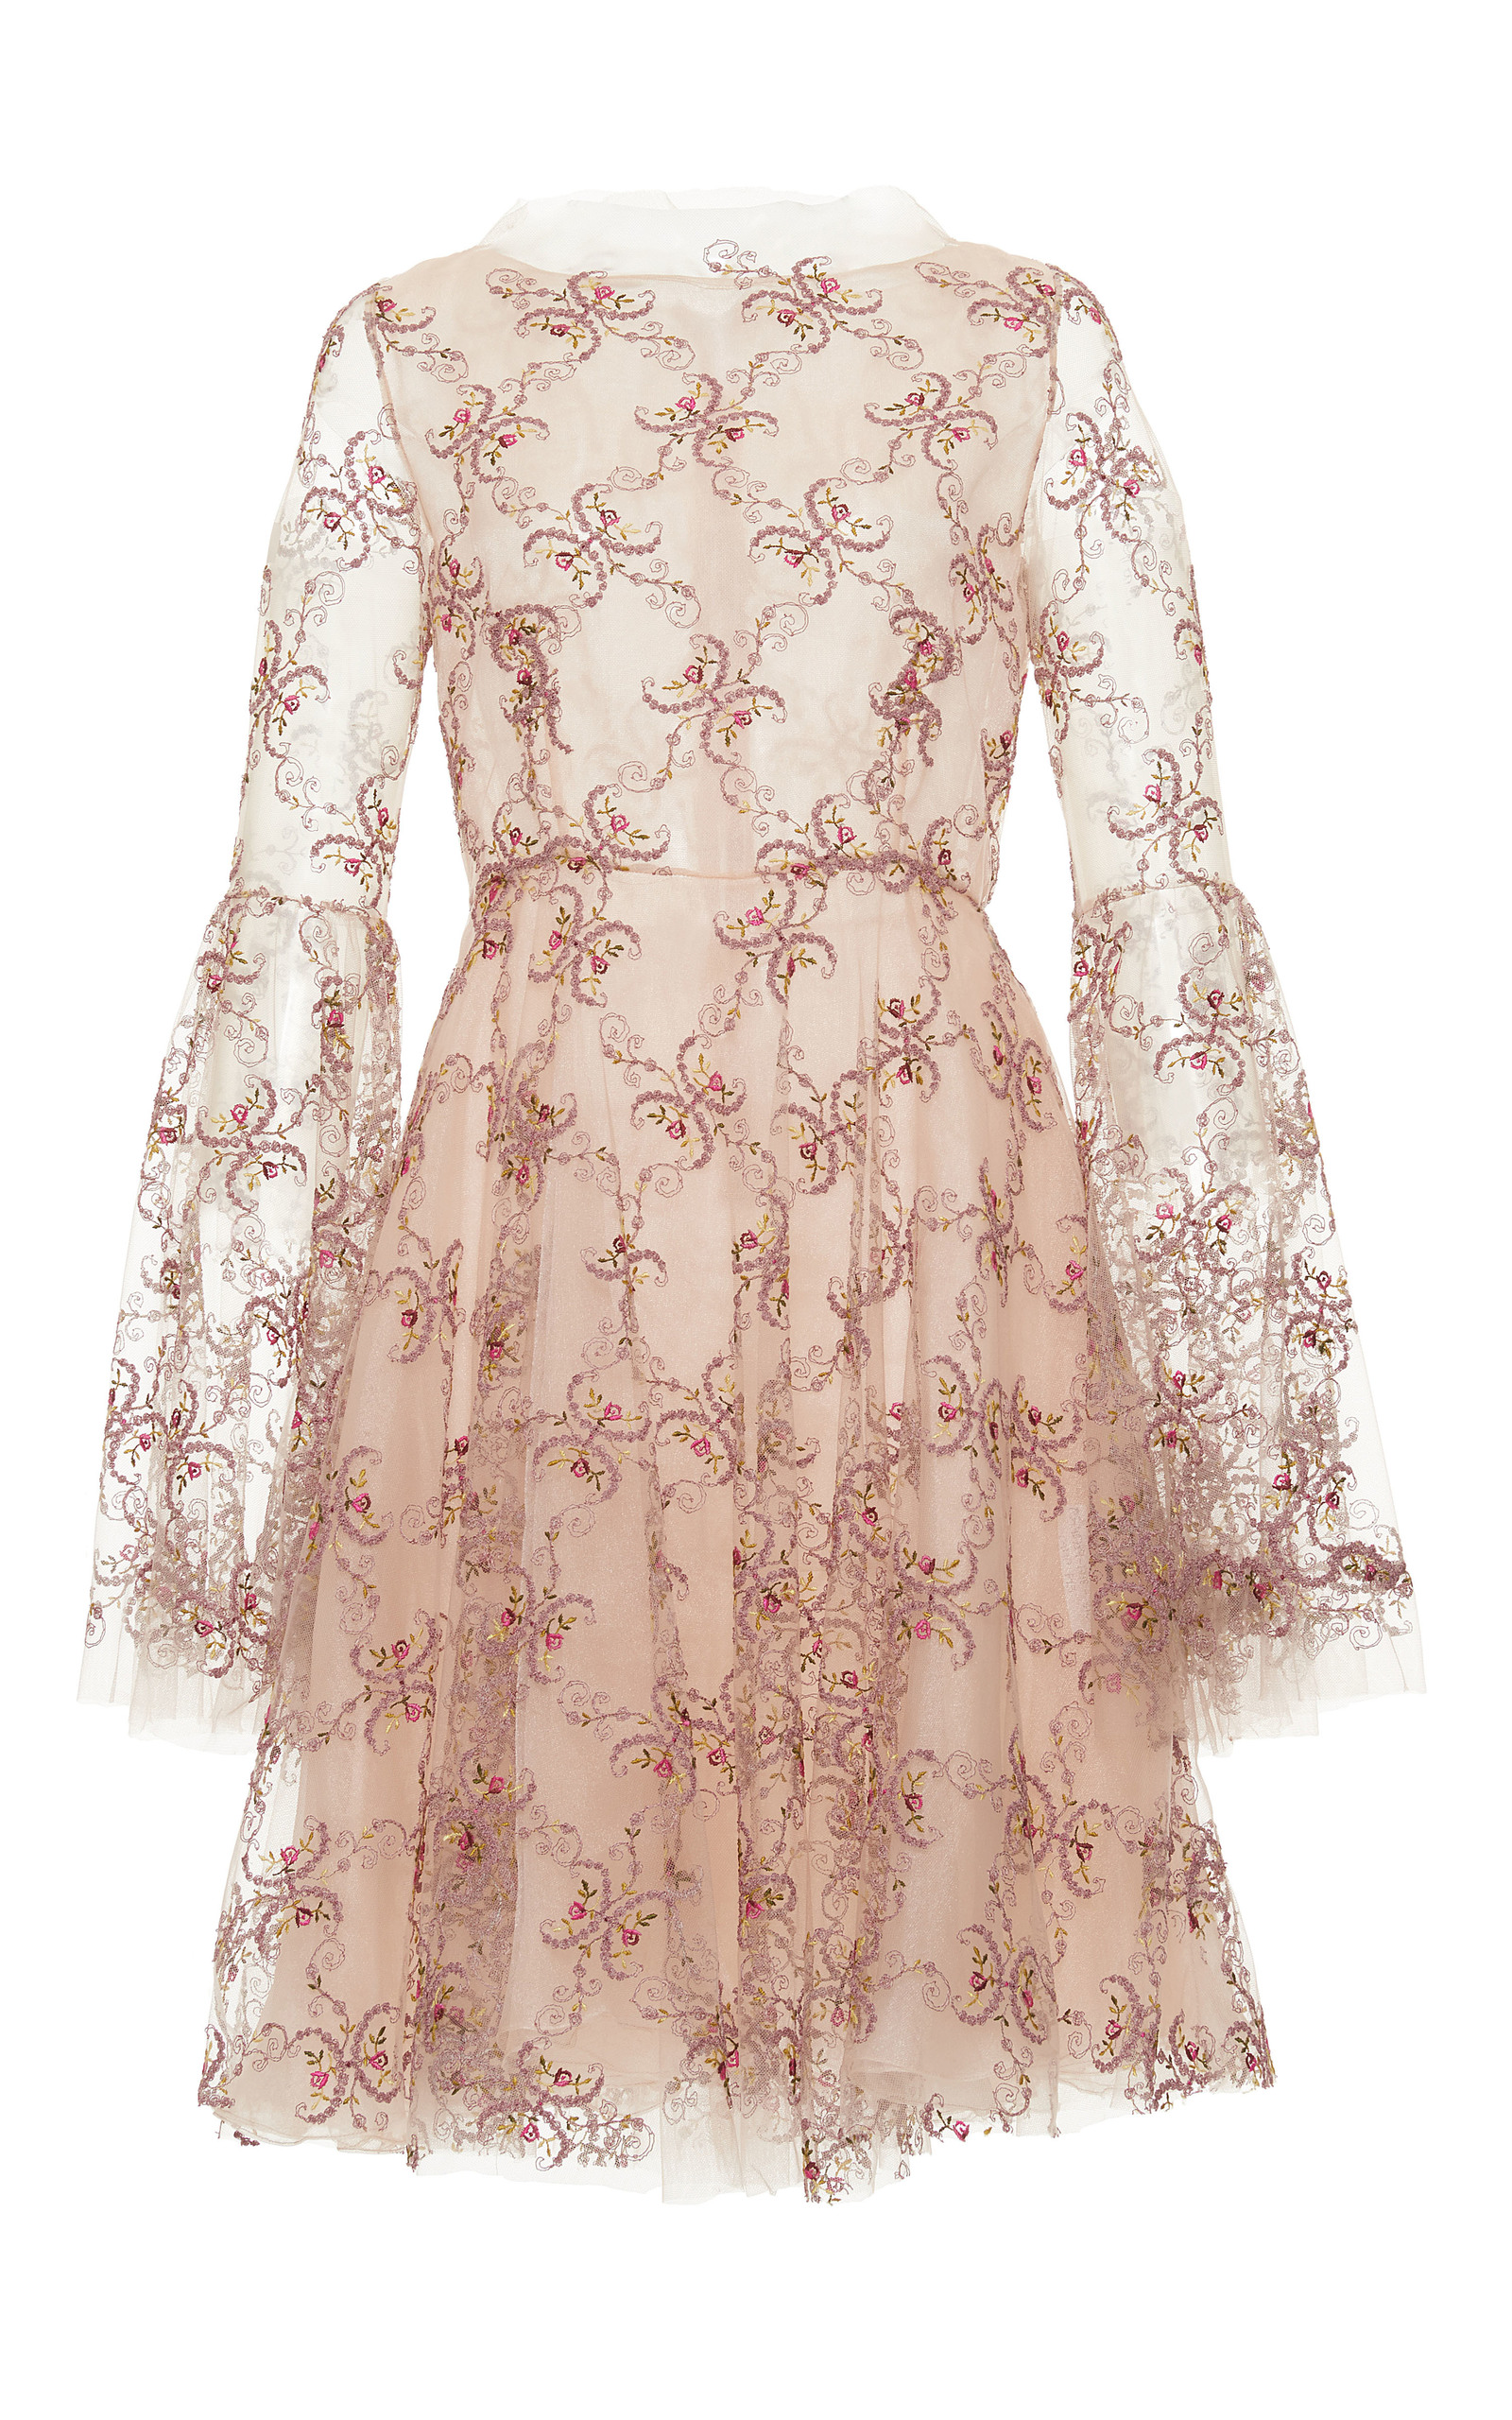 Floral embroidered mini dress by luisa beccaria moda